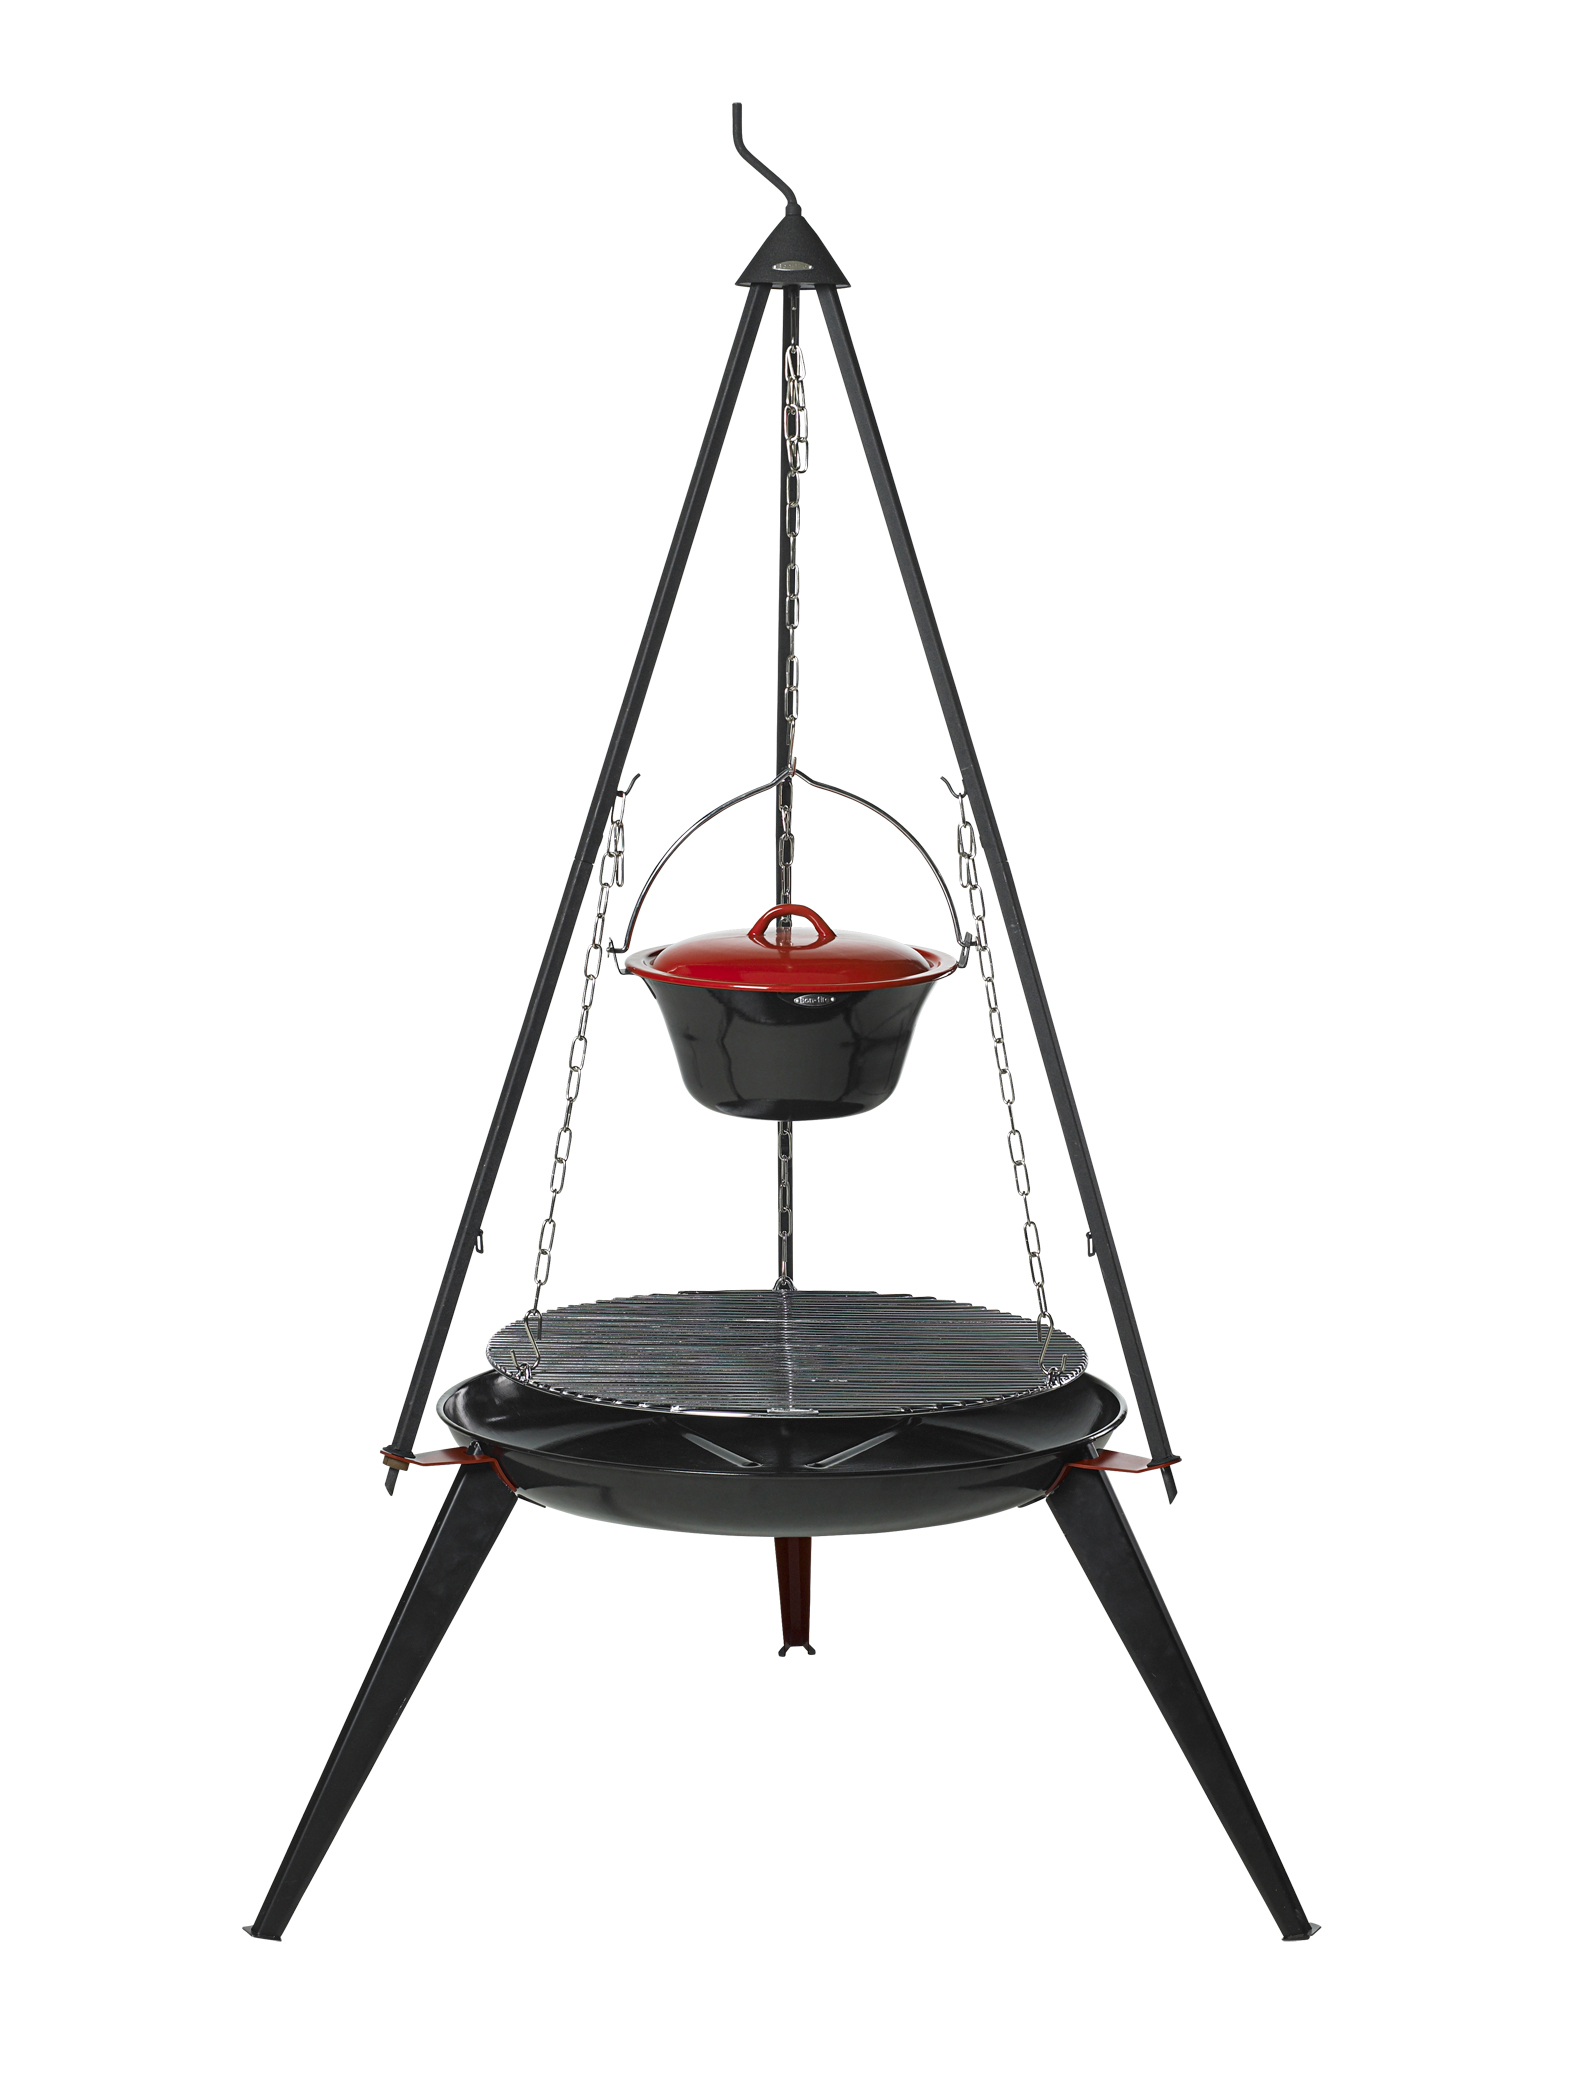 Bon-fire Brazier with long legs. Basic set and Stew pot on top.